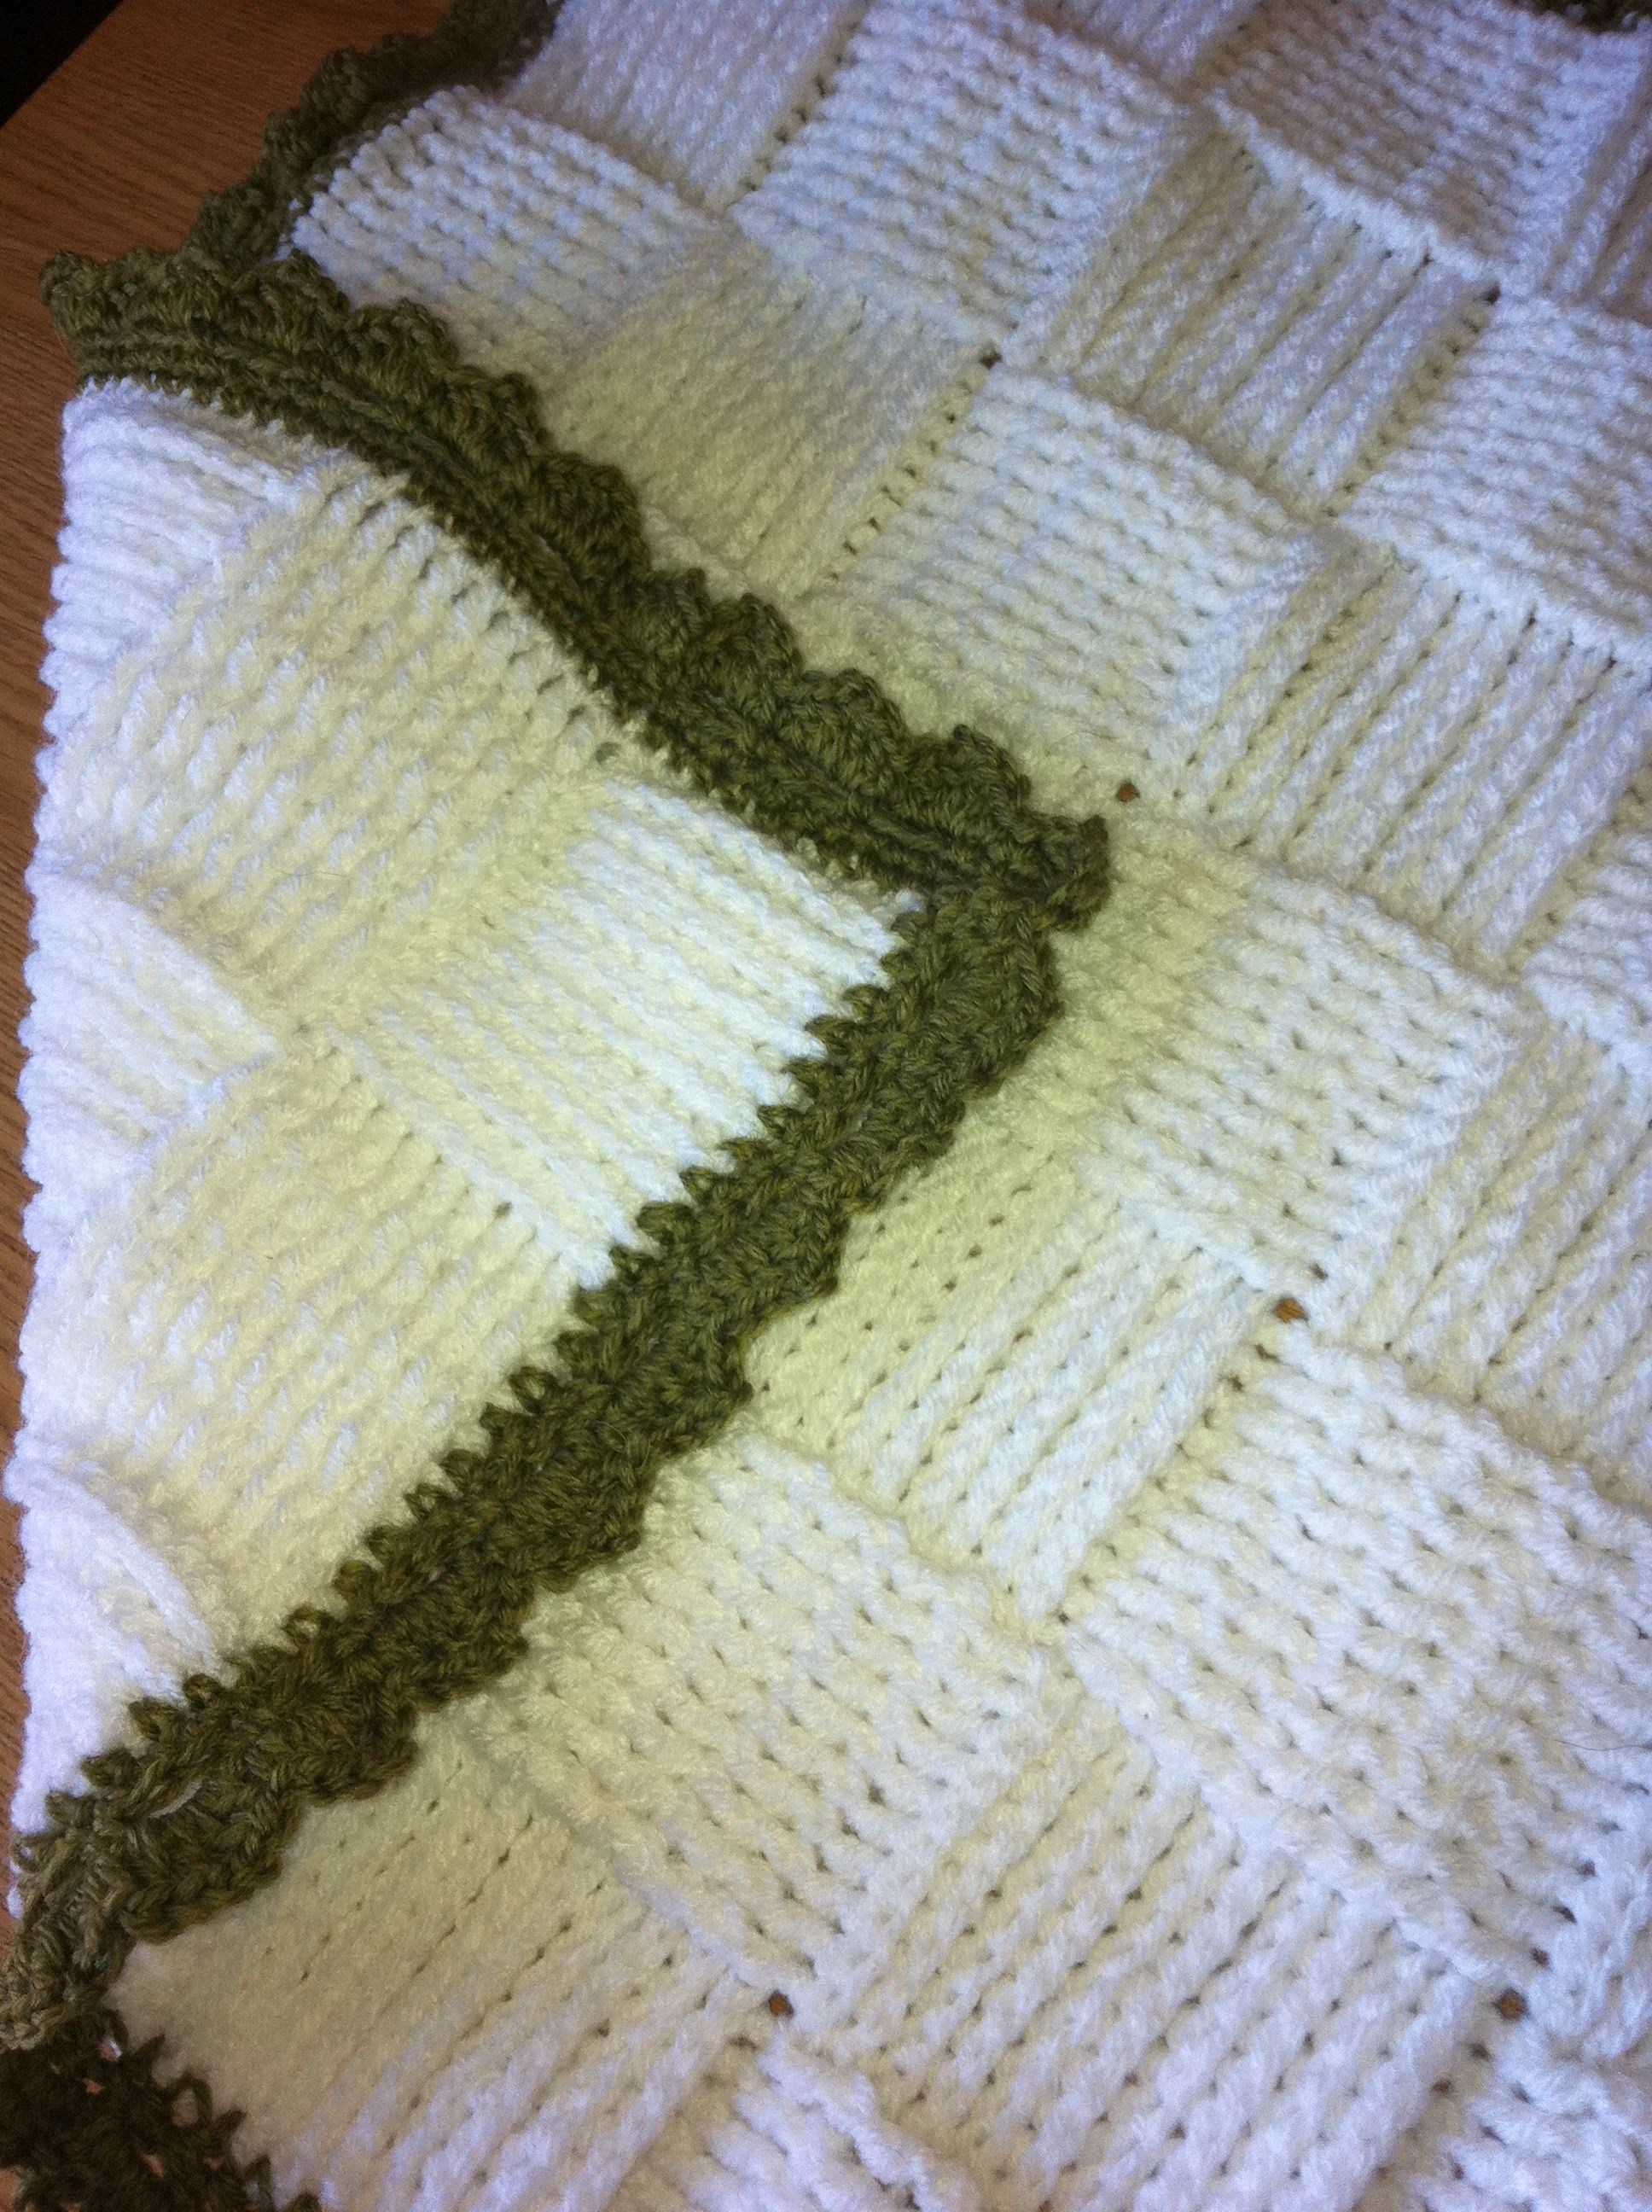 Crocheted baby blanket in a basket weave stitch double sided crocheted baby blanket in a basket weave stitch double sided pattern sturdy weight even bankloansurffo Choice Image